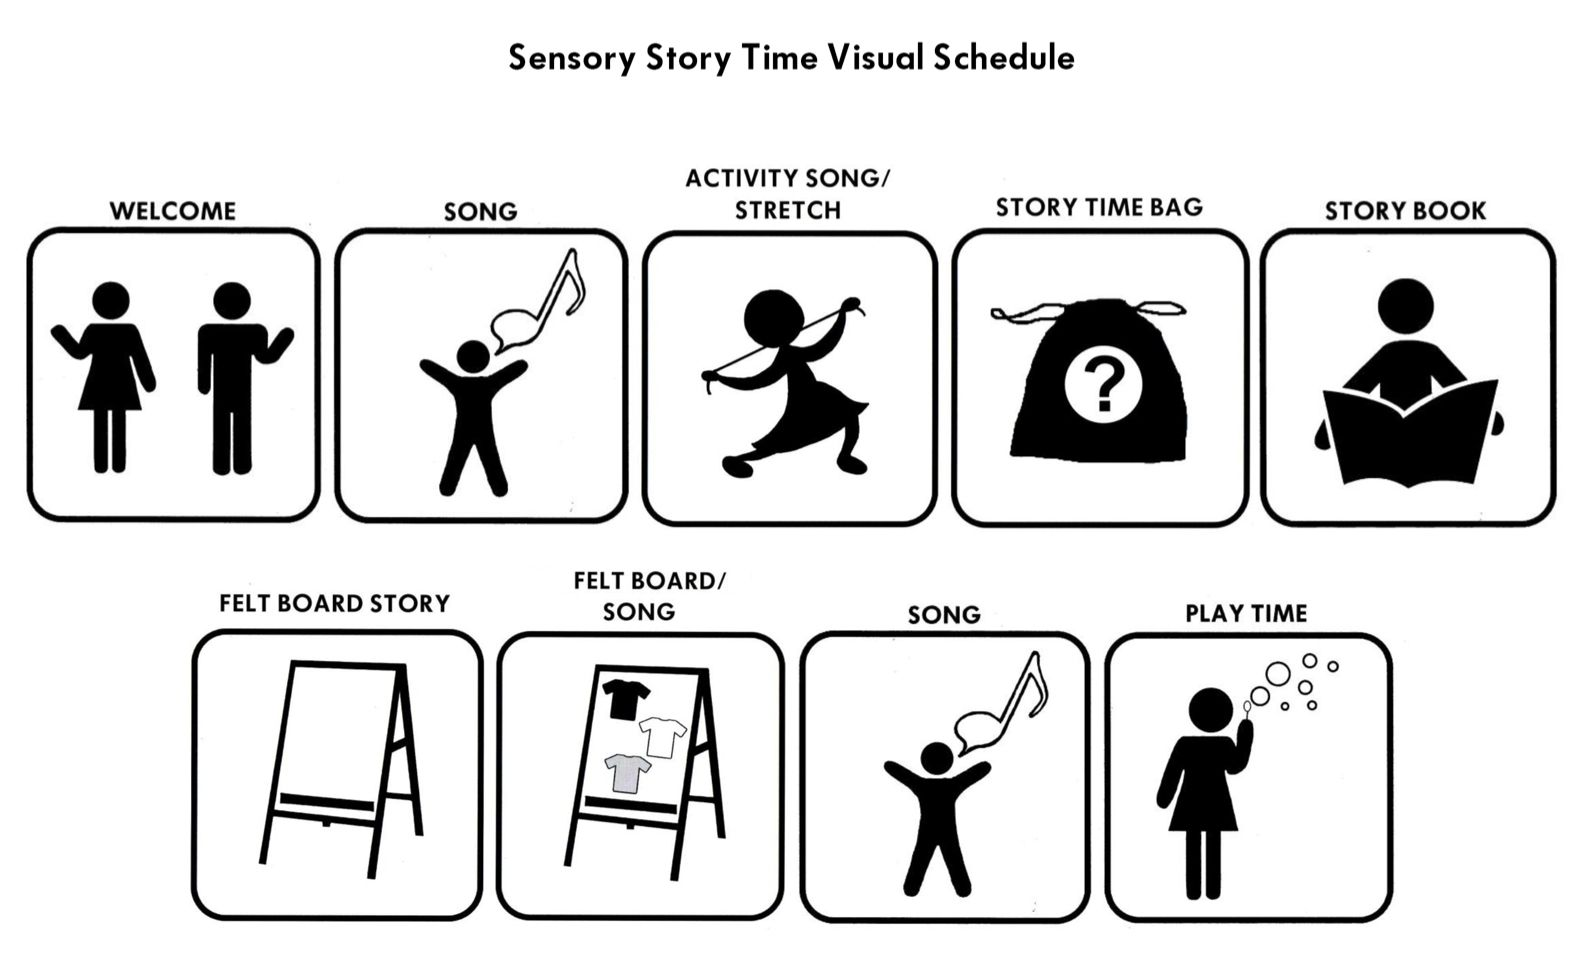 Great example of a visual schedule for StoryTime